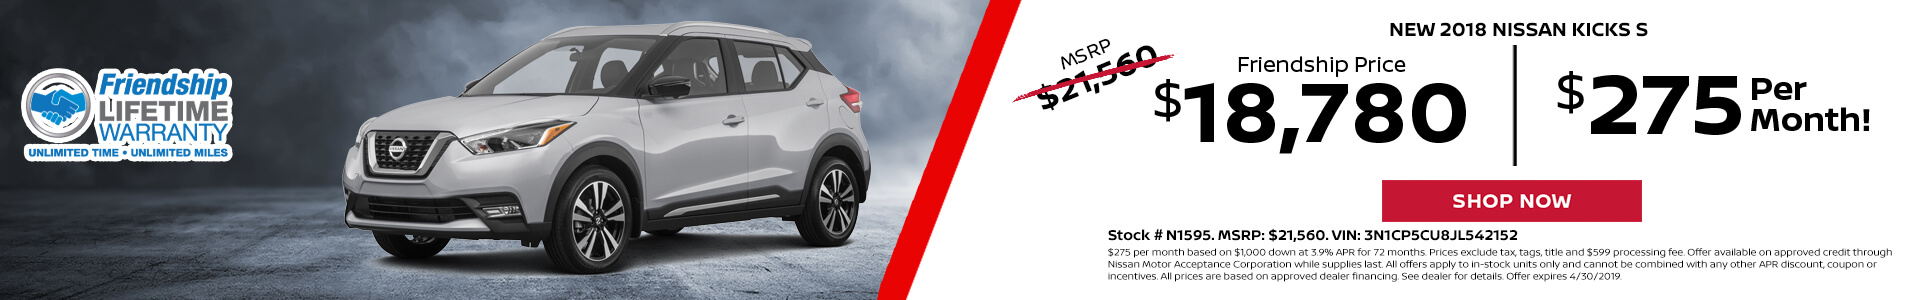 Nissan Kicks $18,780 Purchase